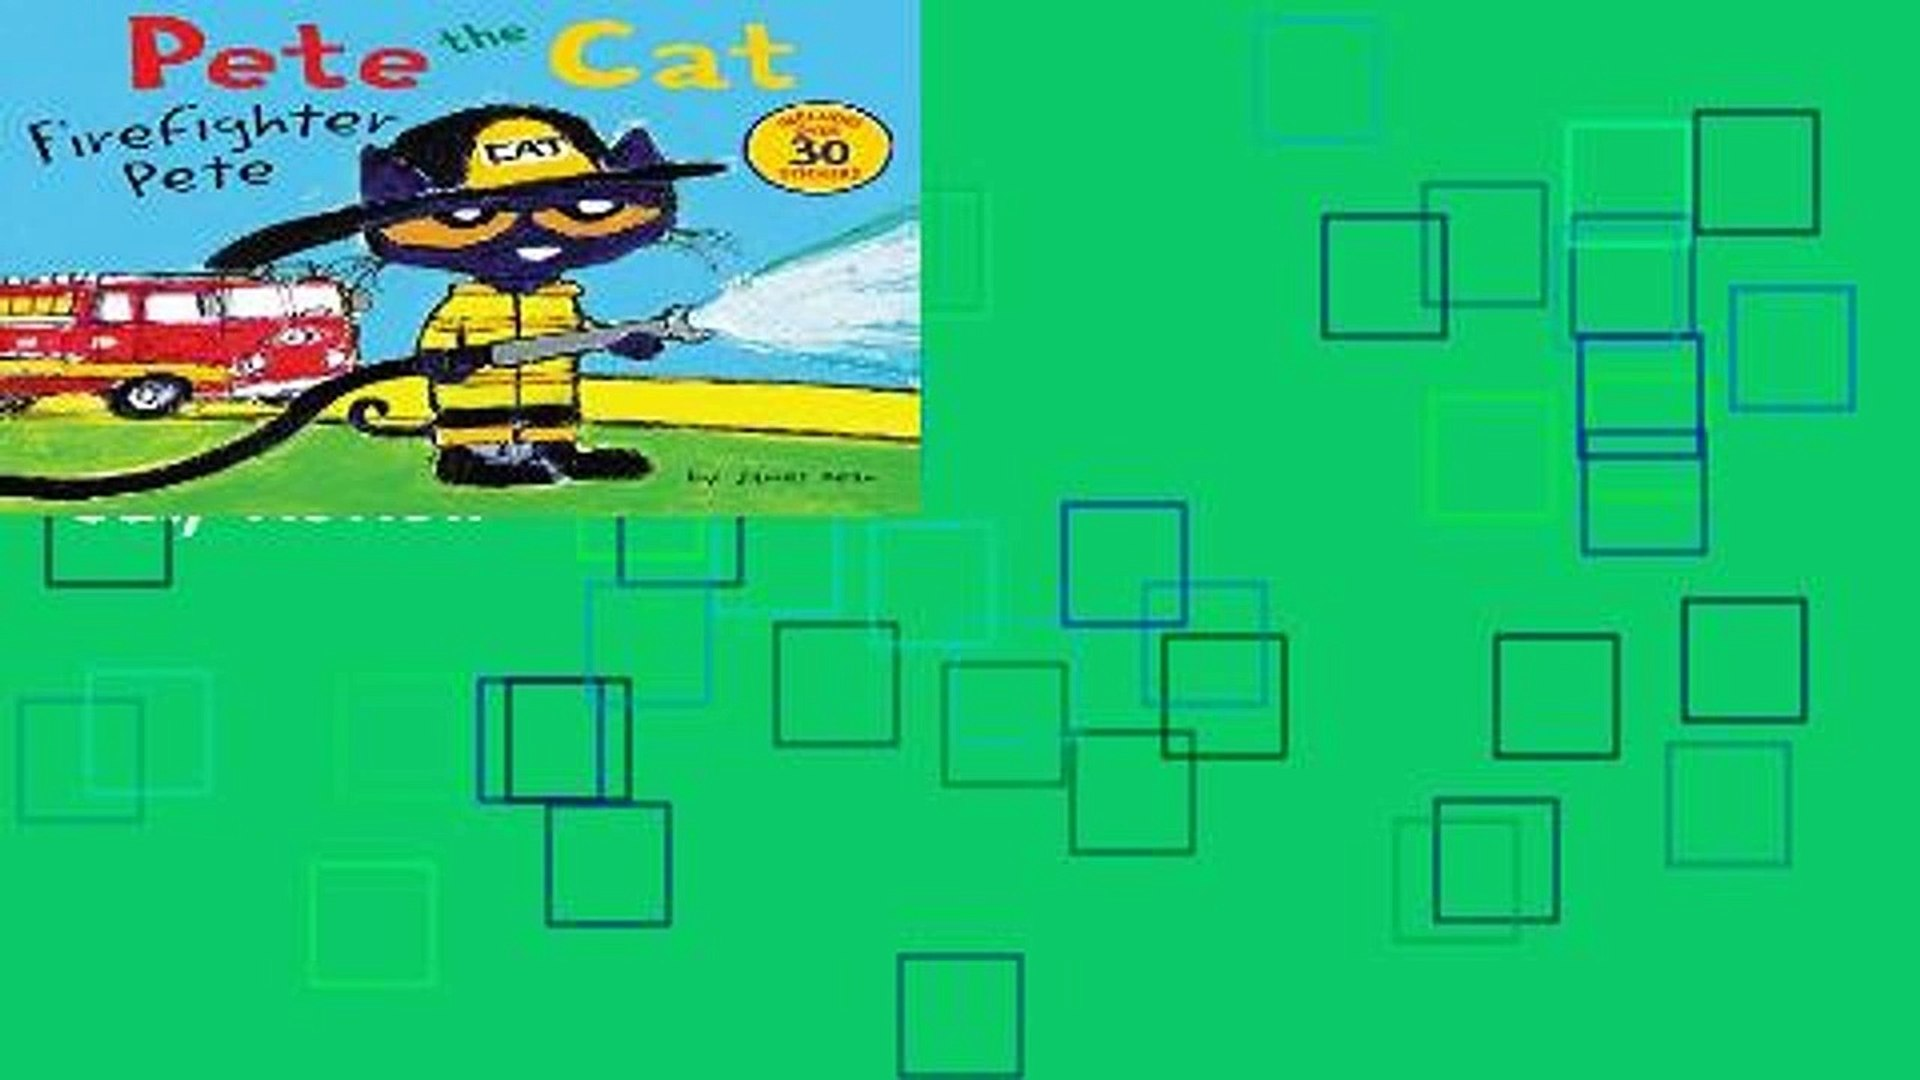 Any Format For Kindle  Firefighter Pete (Pete the Cat)  Review